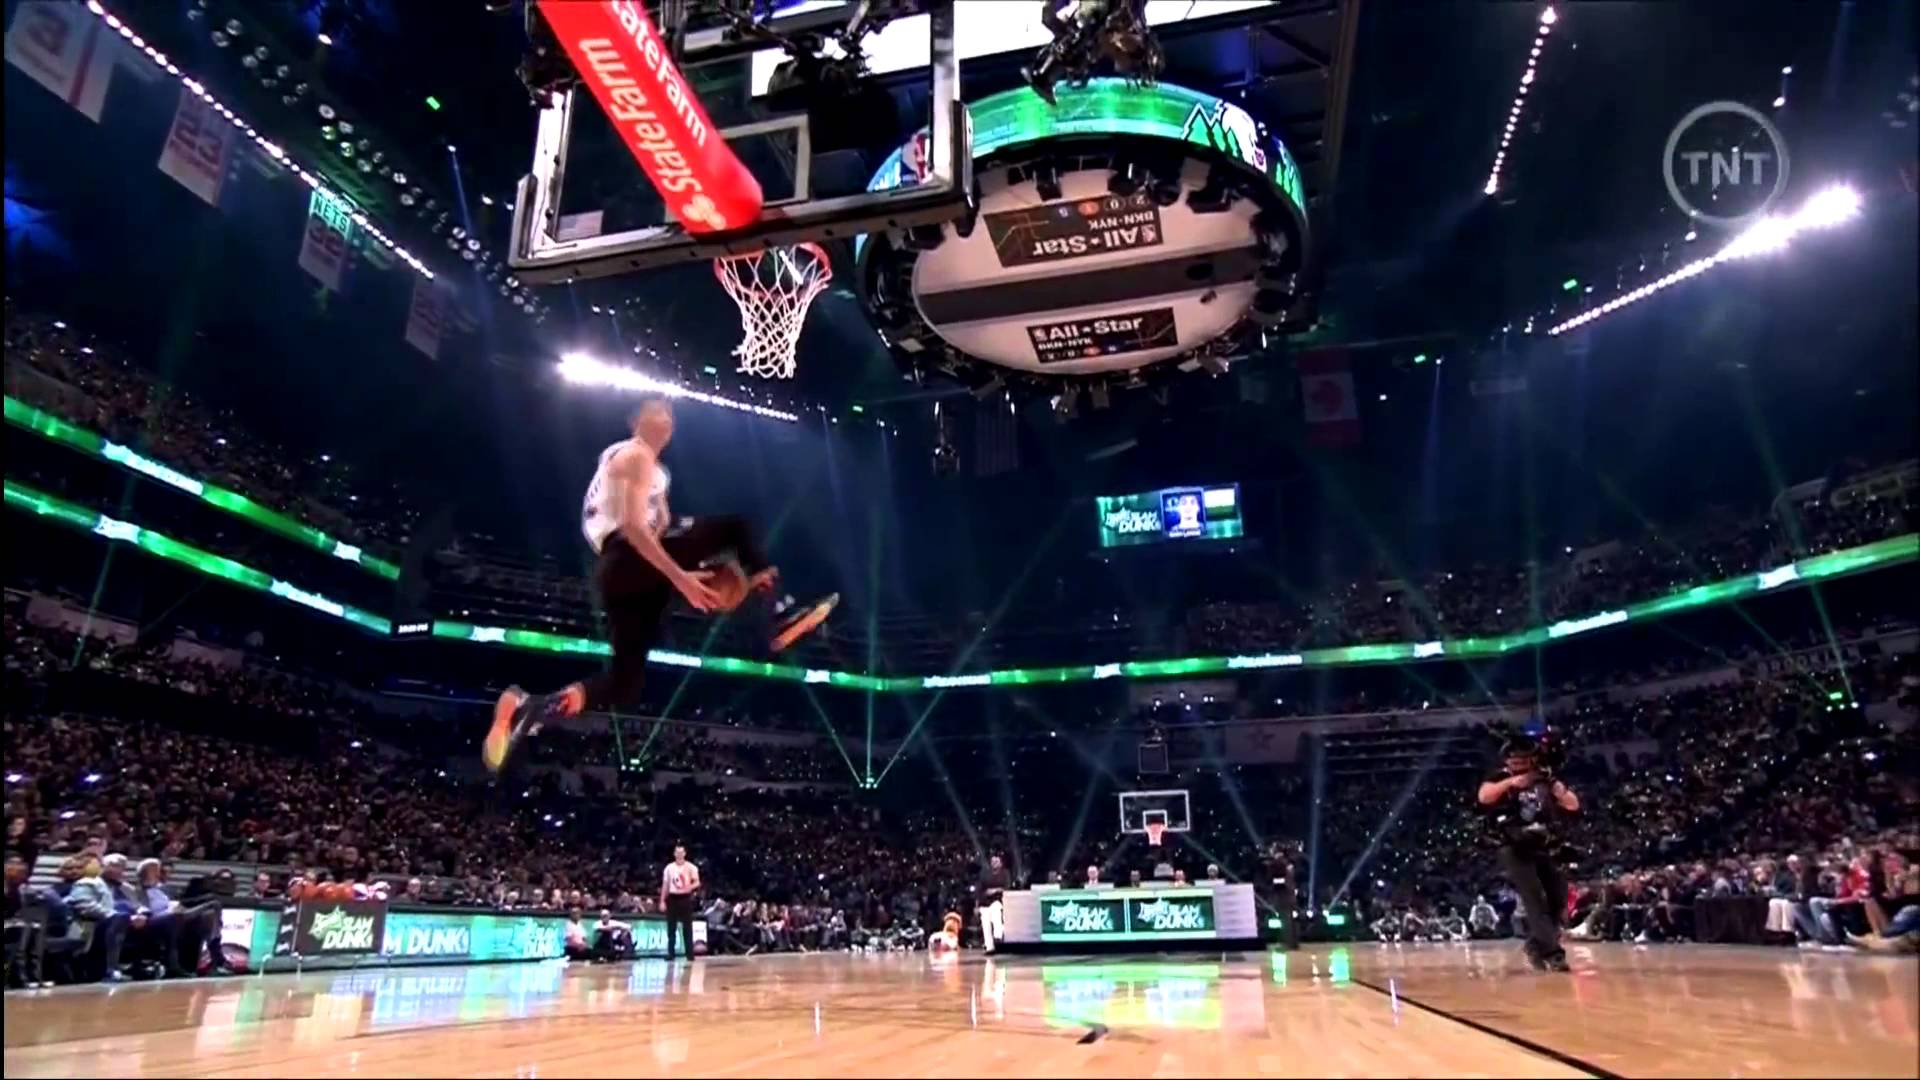 Zach LaVine brings back Dunk Contest. At least for a night